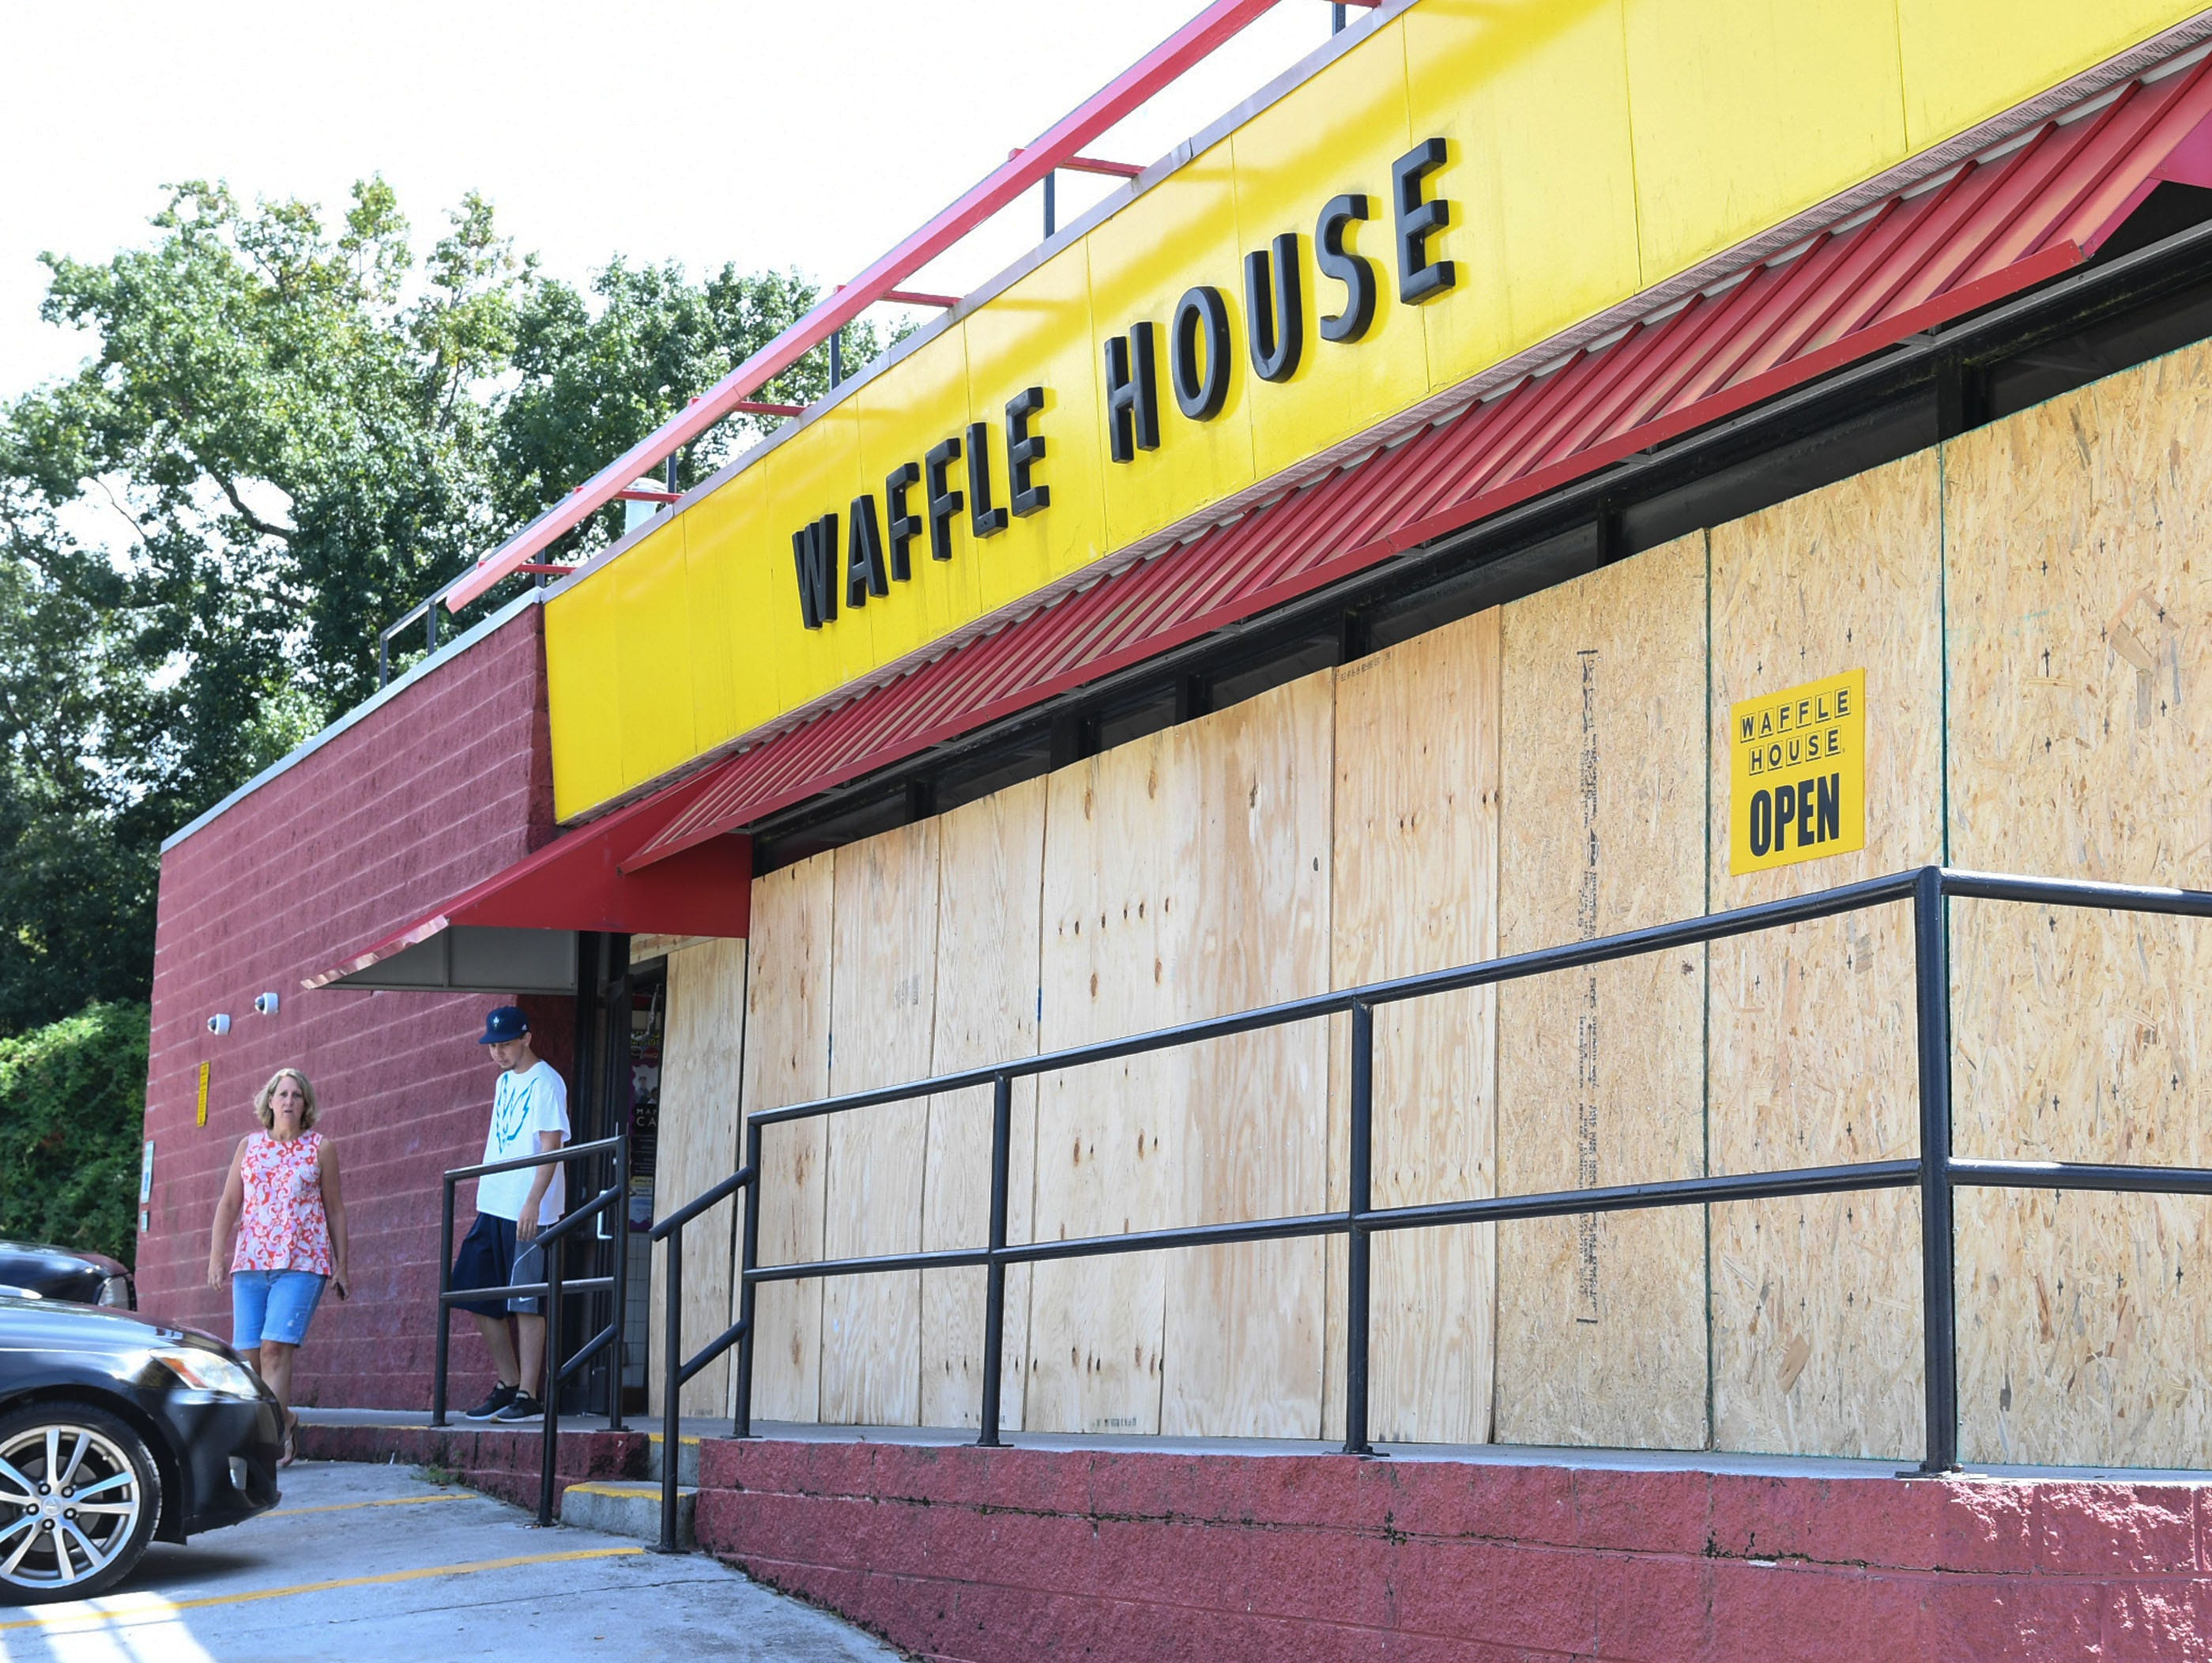 A Waffle House on state highway 421 said they would be open through Hurricane Florence in Wilmington, North Carolina on Wednesday, September 12, 2018.  (Ken Ruinard / Greenville News / Gannett USA Today Network / 2018 )